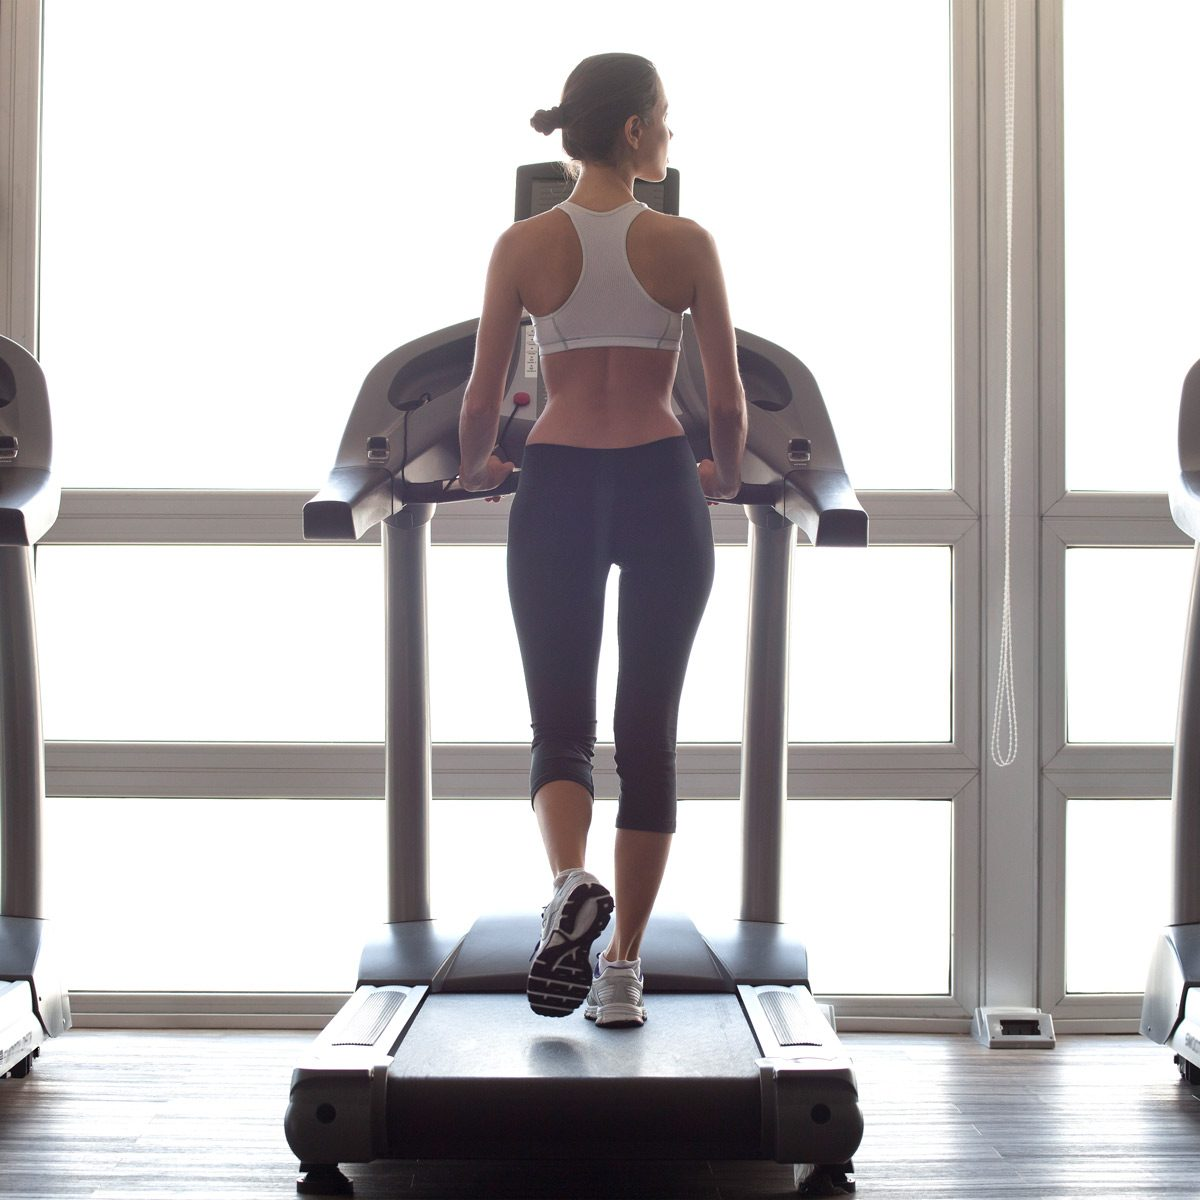 Woman jogging on treadmill at gym Gettyimages 532097165